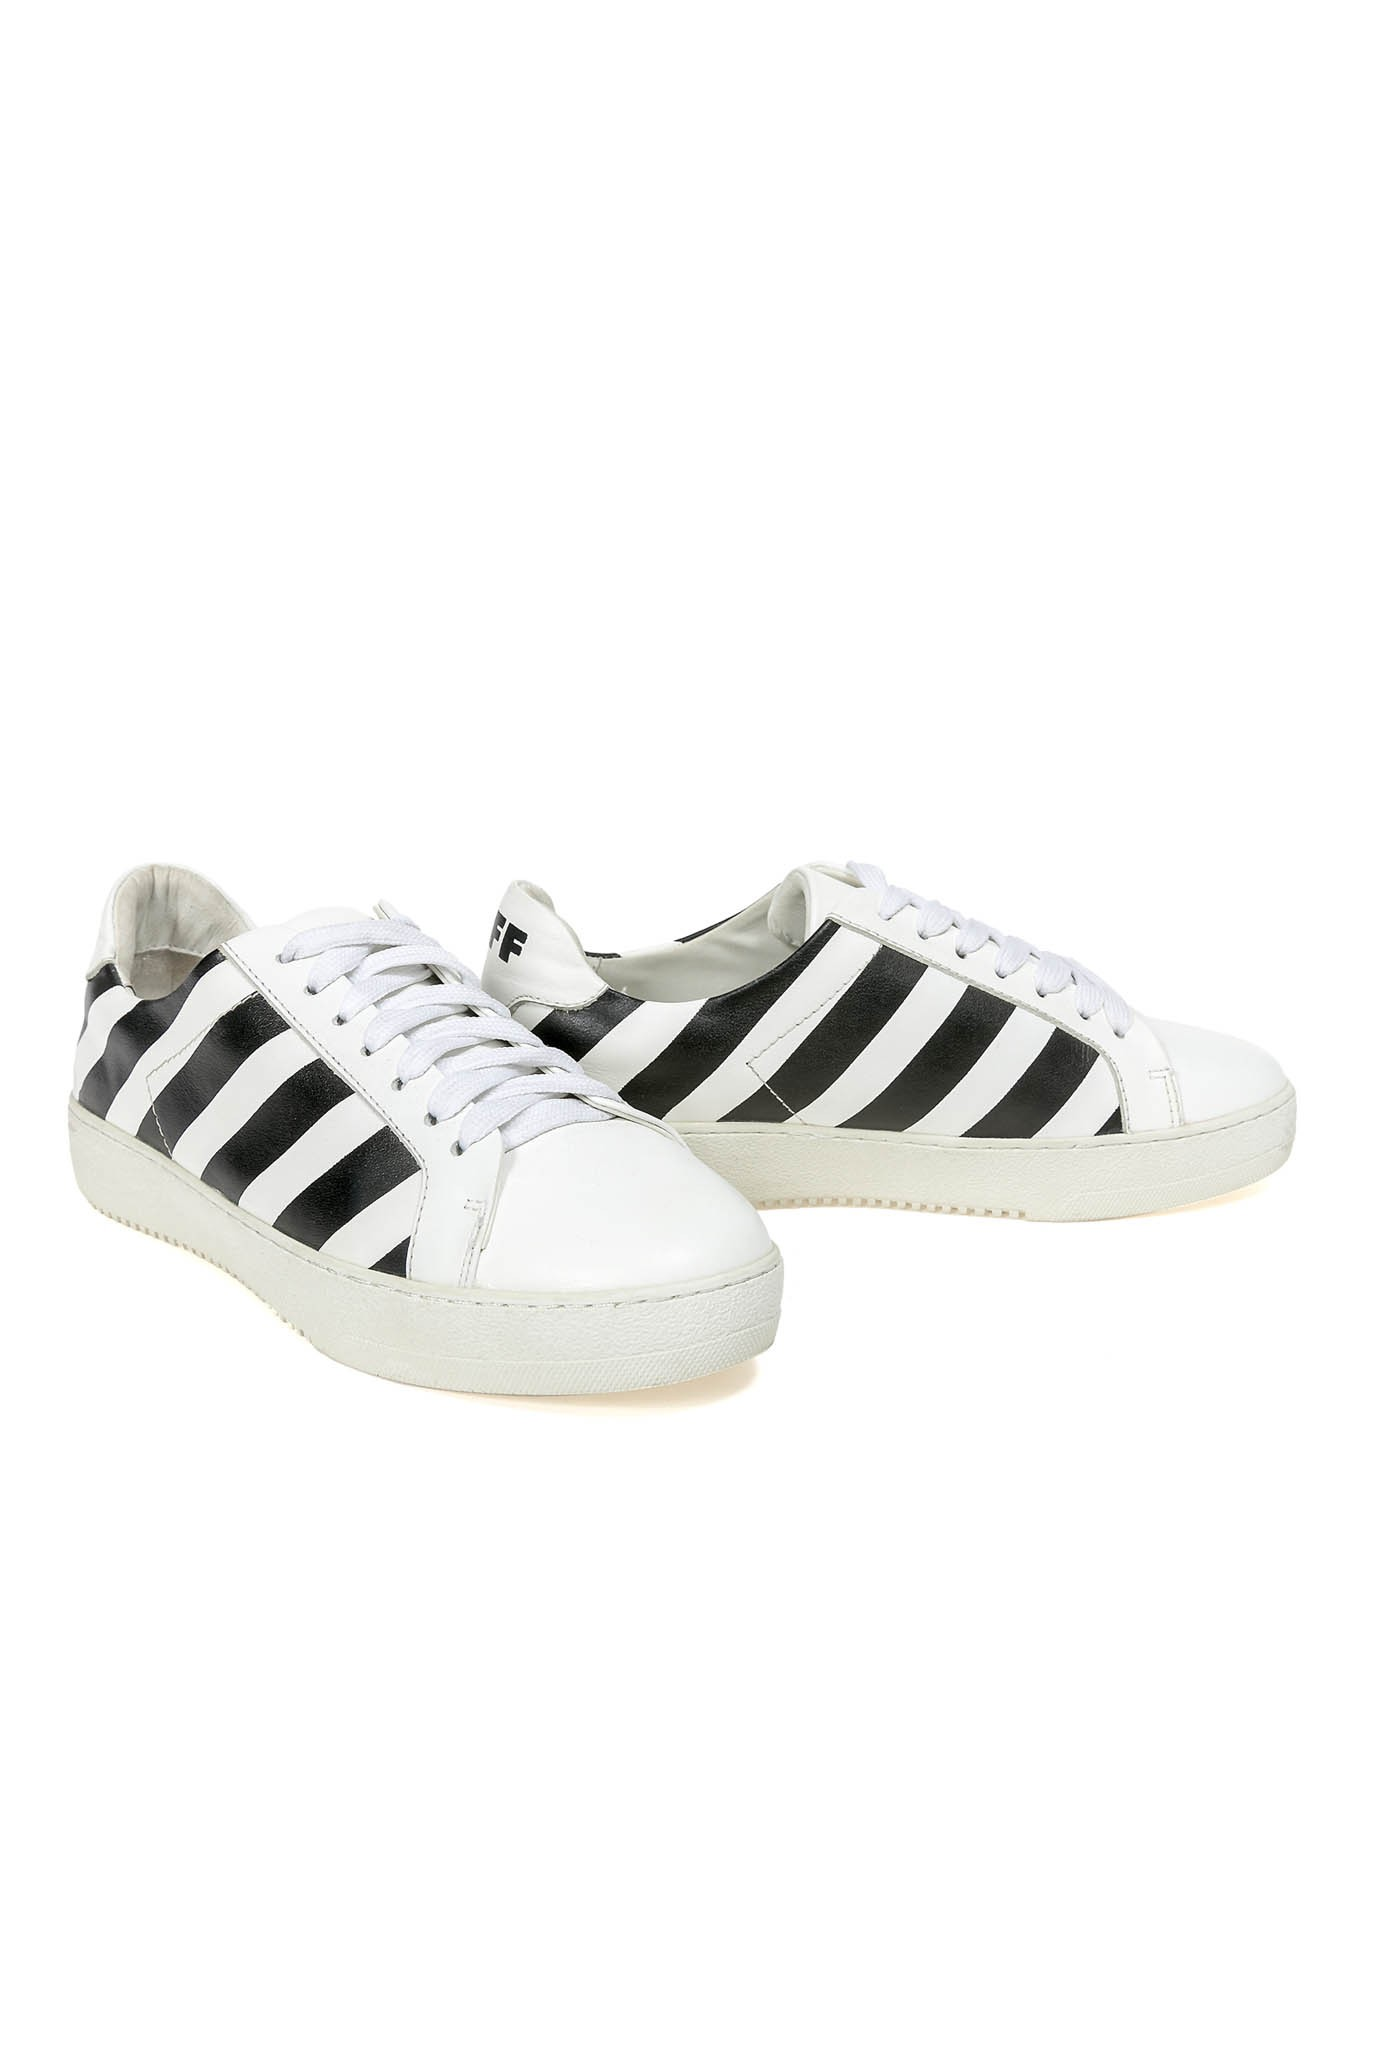 8799710355b4 White and Black Sneakers BLACK STRIPE - Shoes On Sale - Shoes